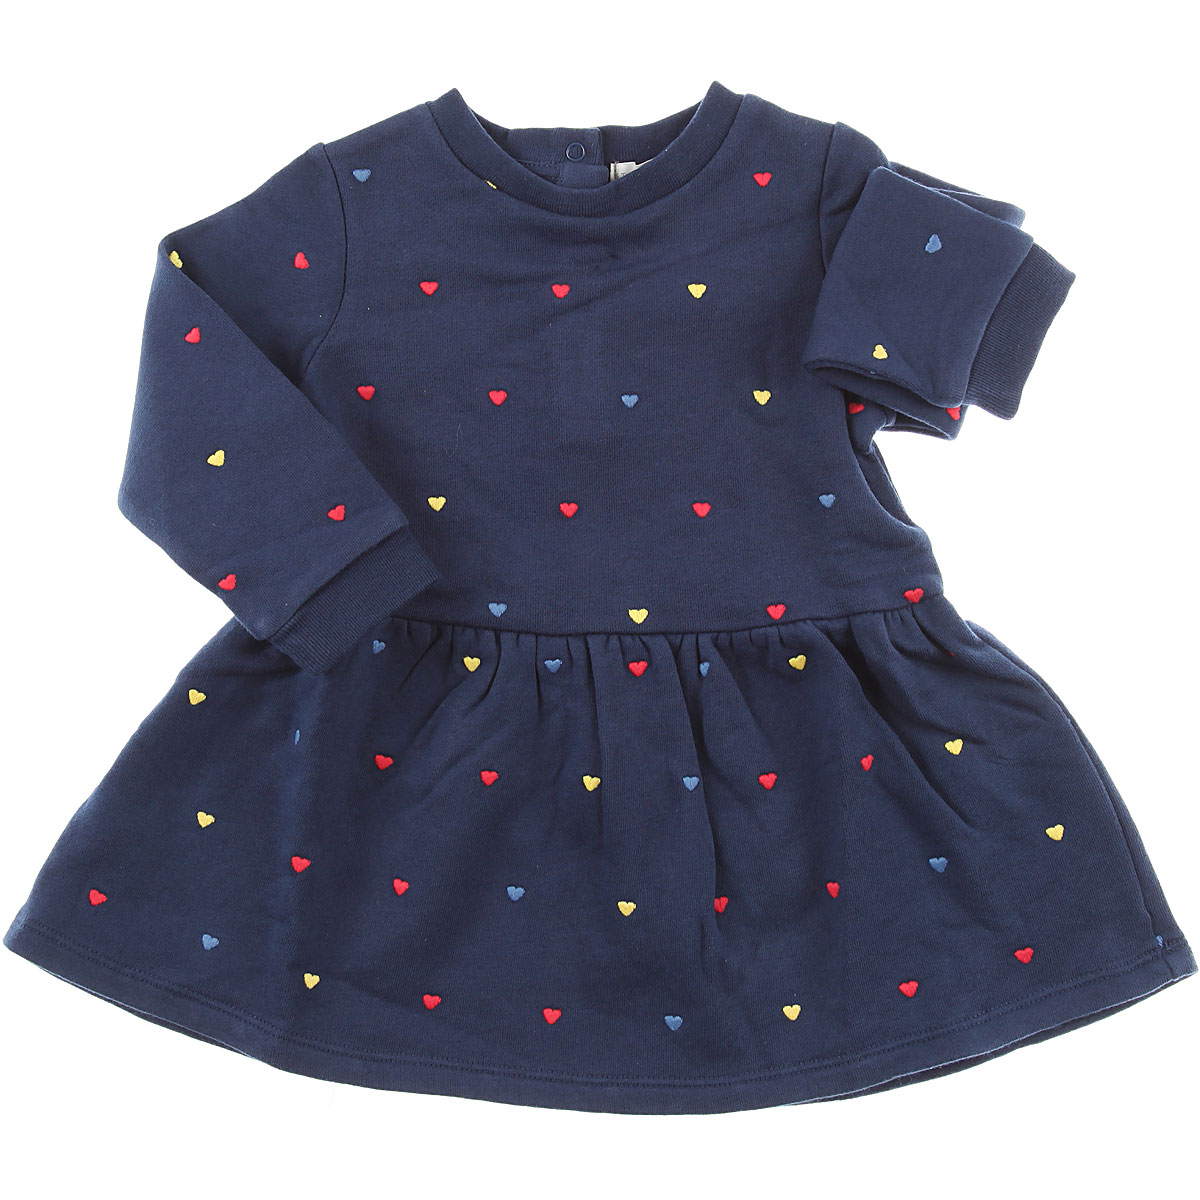 Image of Stella McCartney Baby Dress for Girls, Blue, Cotton, 2017, 12M 18M 6M 9M